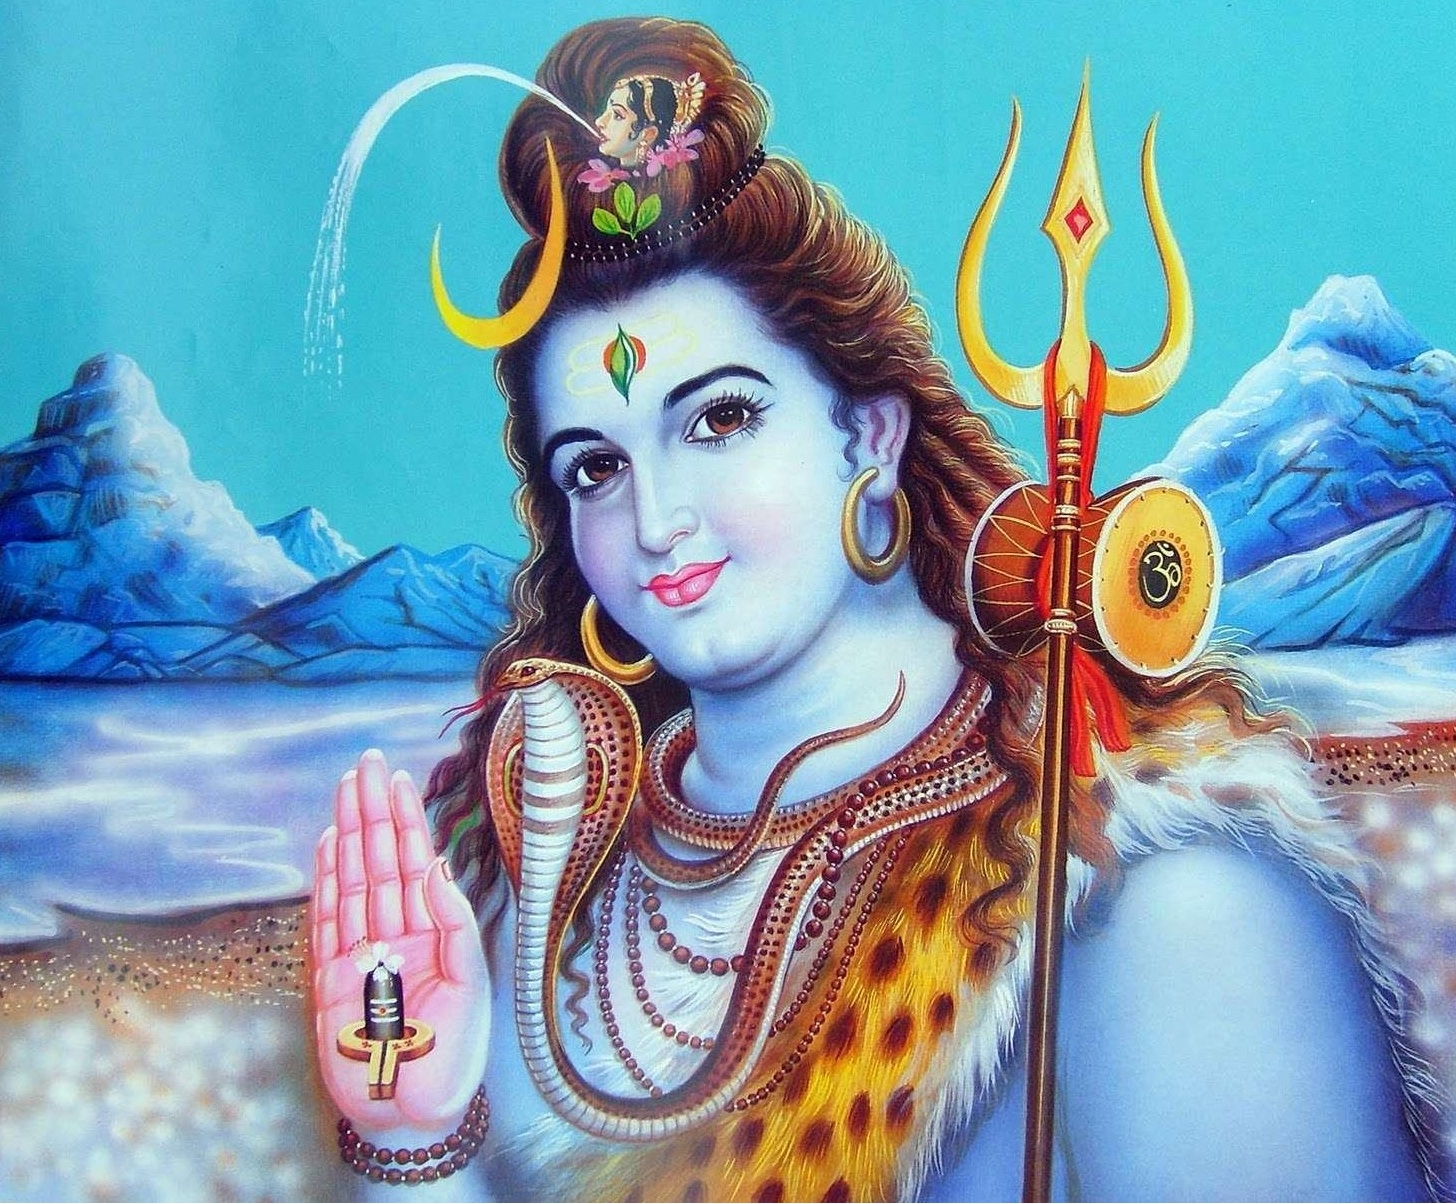 Shiva Wallpaper Hindu Wallpaper Lord Shiva Ji Wallpapers: Lord Shiva Images [Wallpapers] & God Shiva Photos In HD